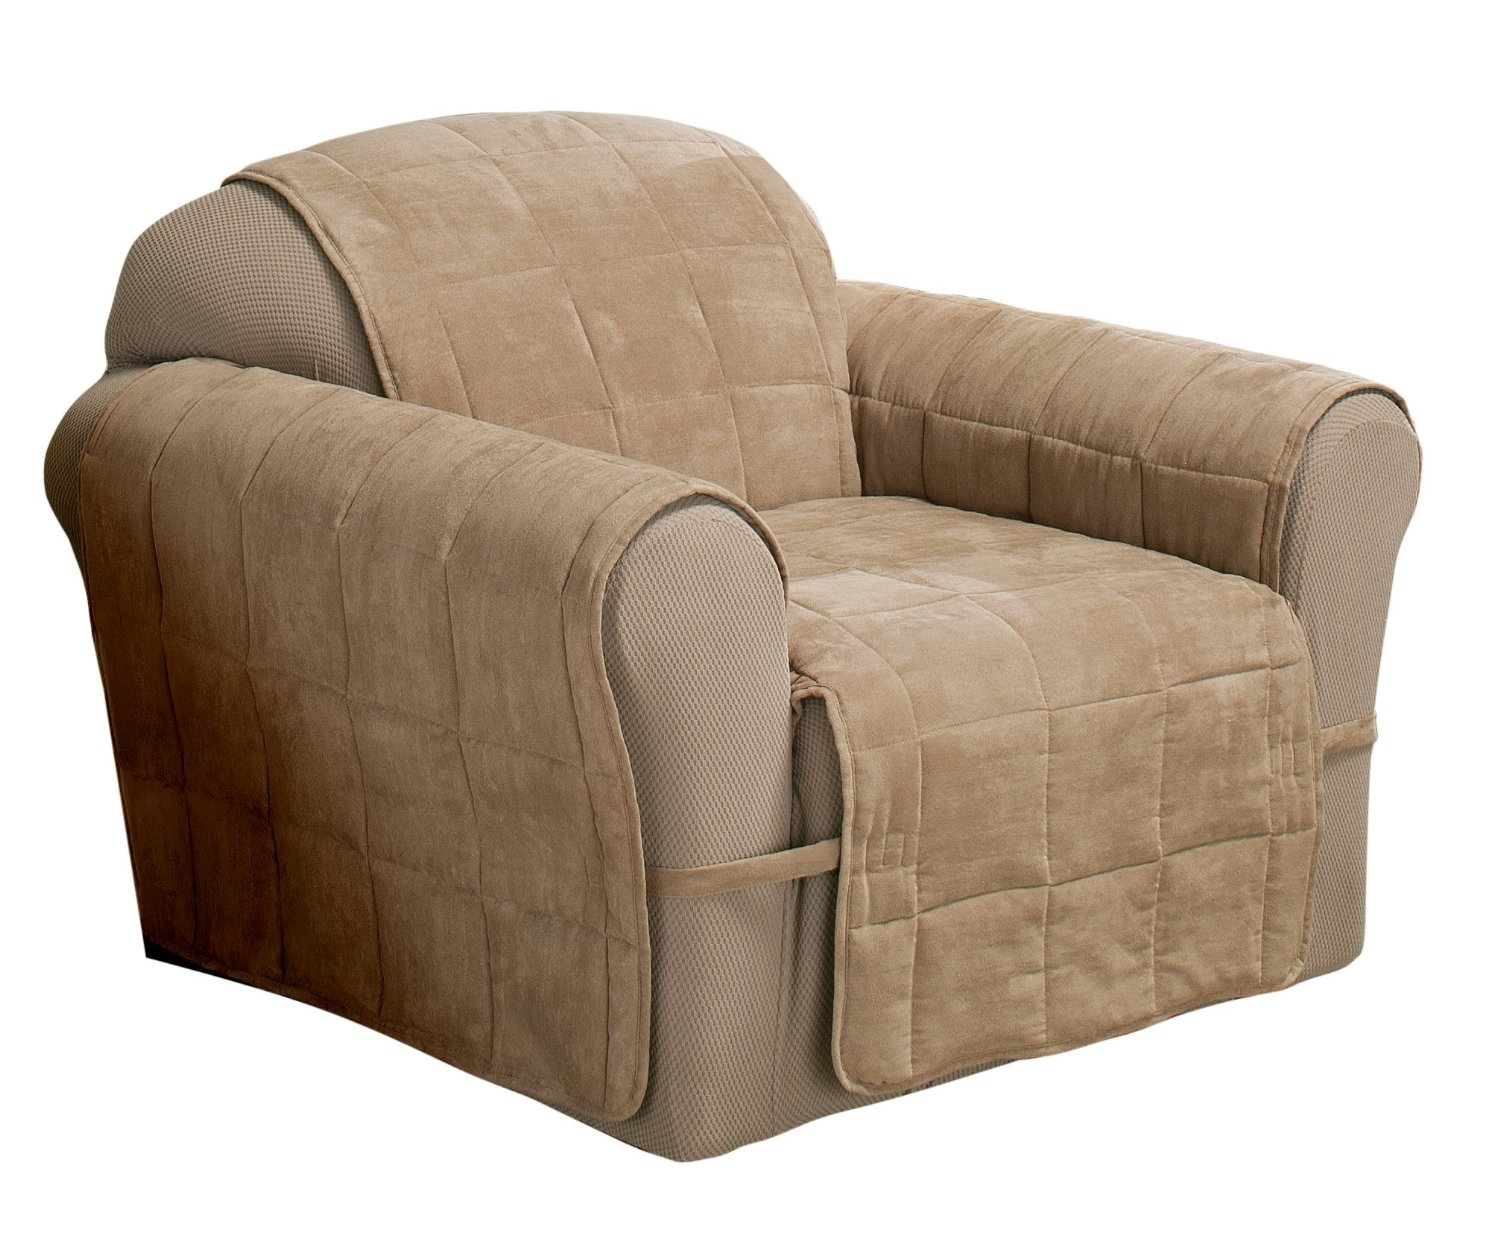 Sofas Center Sofas Covers With For Bcctl Com Staggering Images In Sofa And Chair Covers (Image 13 of 15)